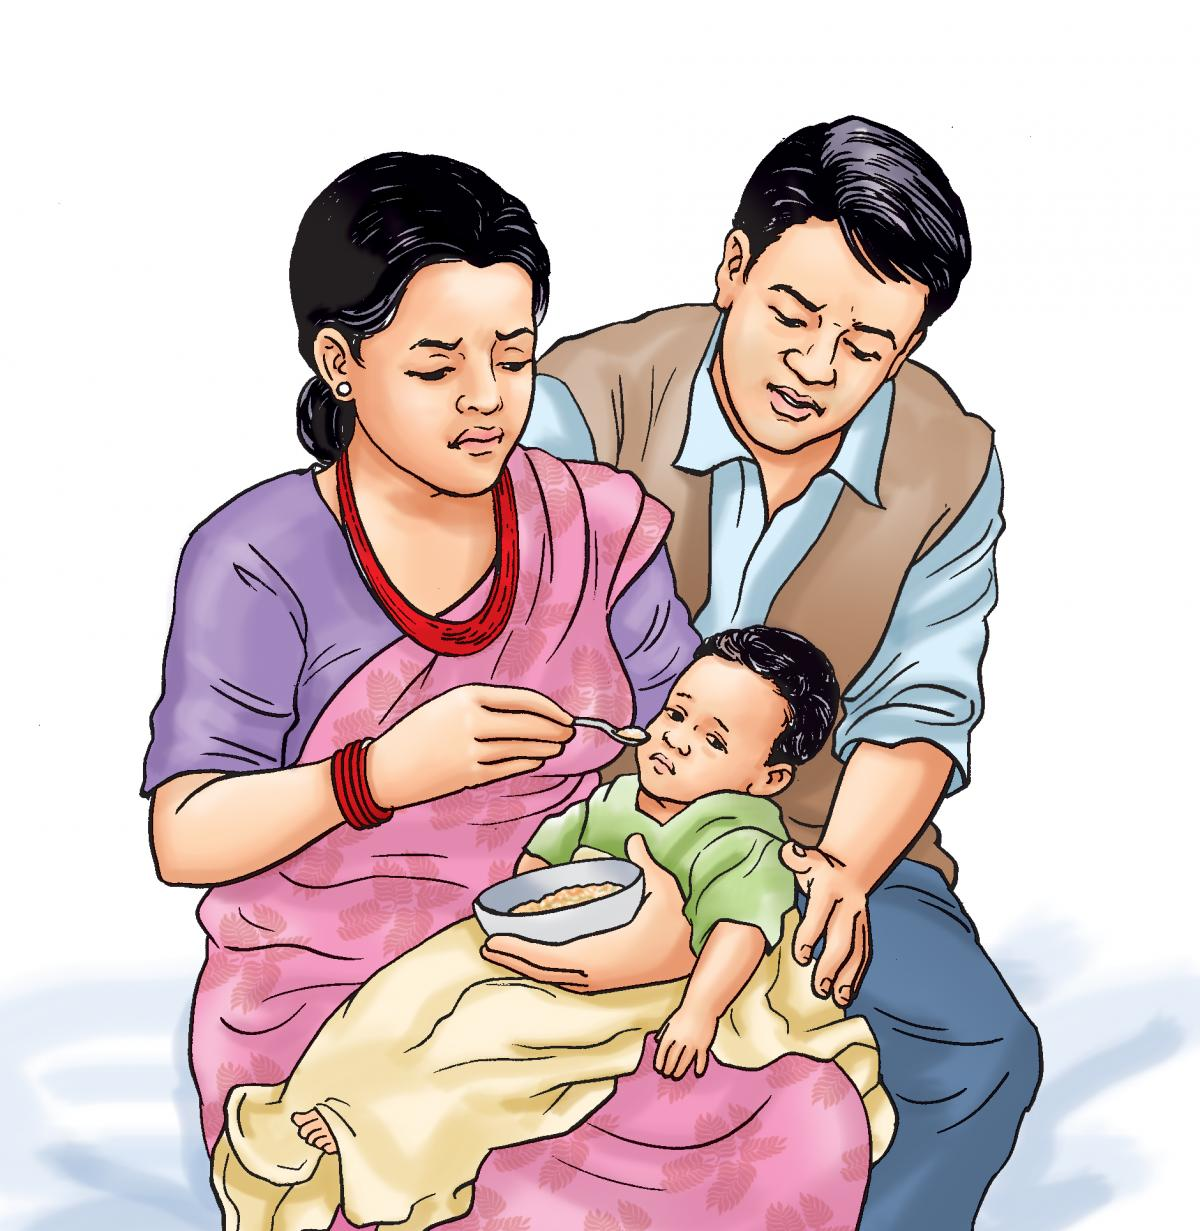 Sick child health - Complementary feeding for a sick child 6-24 mo - 02 - Nepal